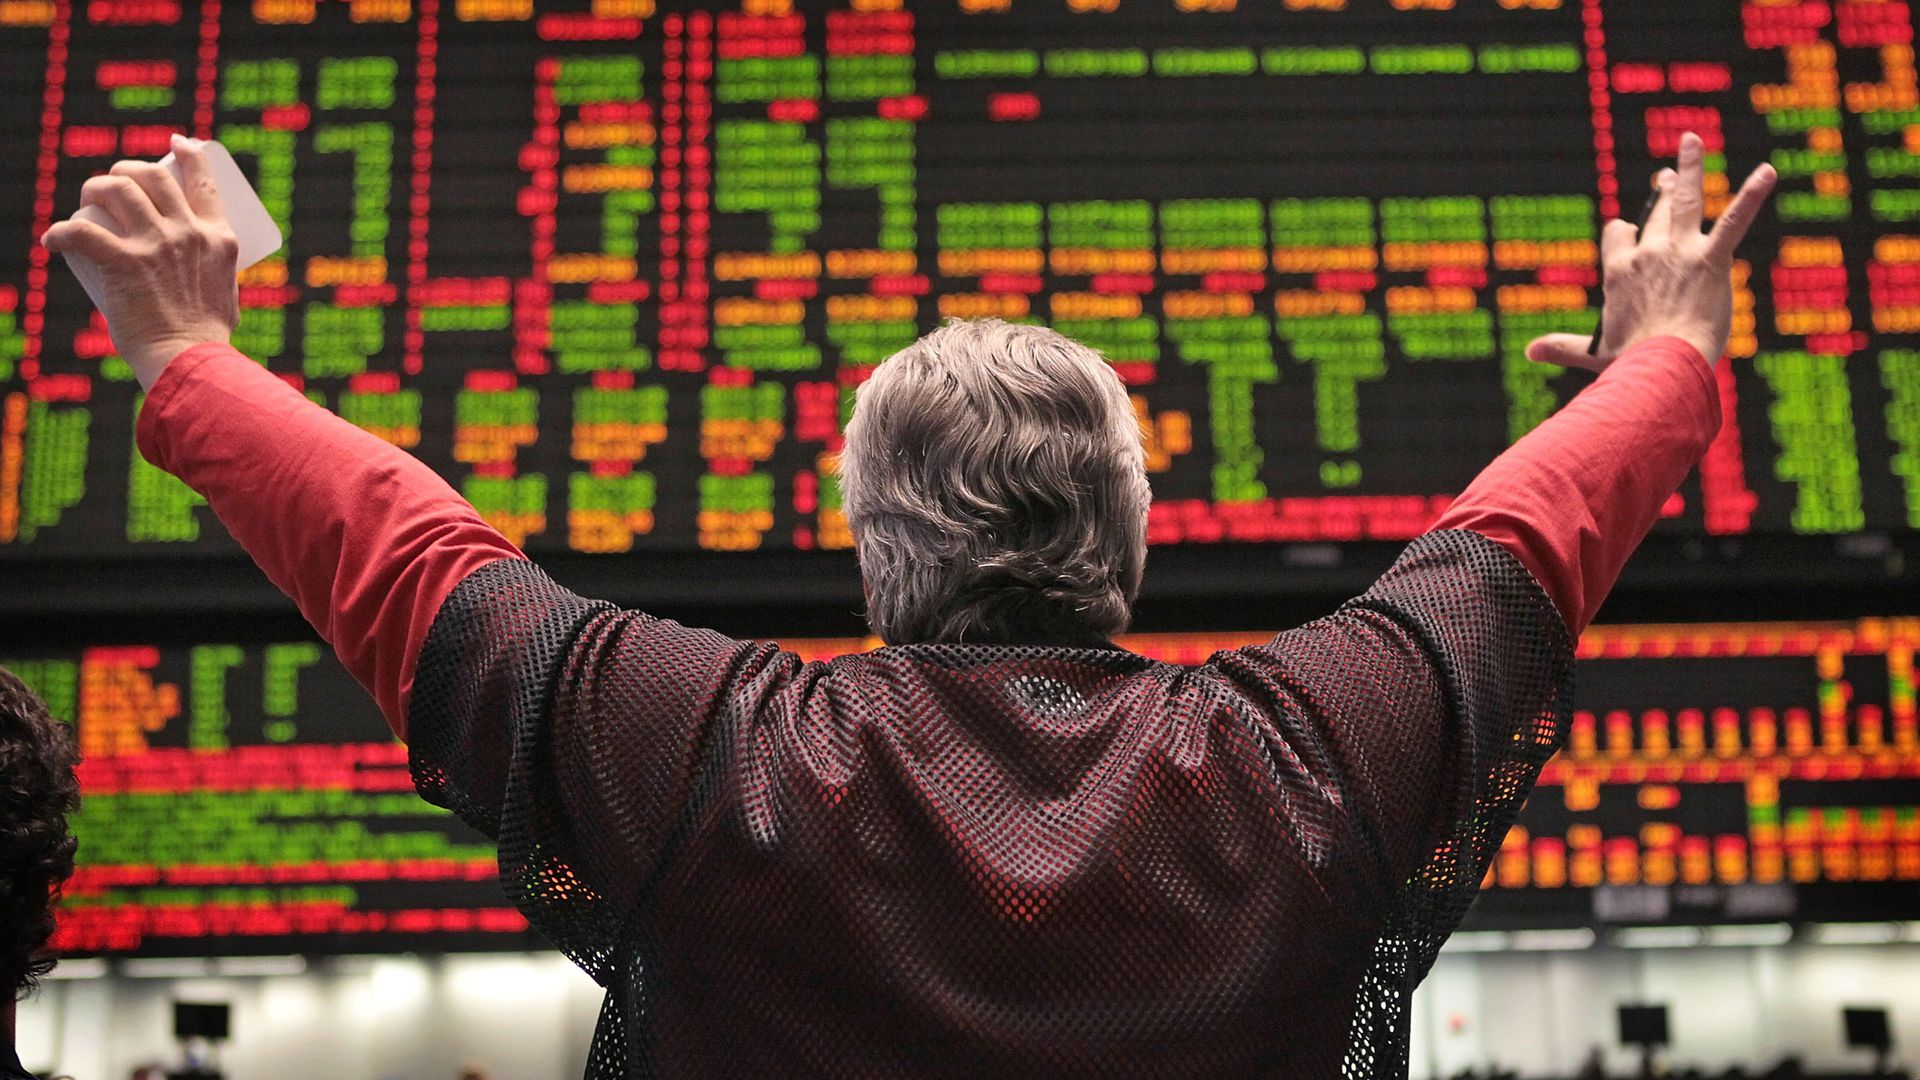 Man with back toward camera with arms in cheering position looking at the stock market ticker